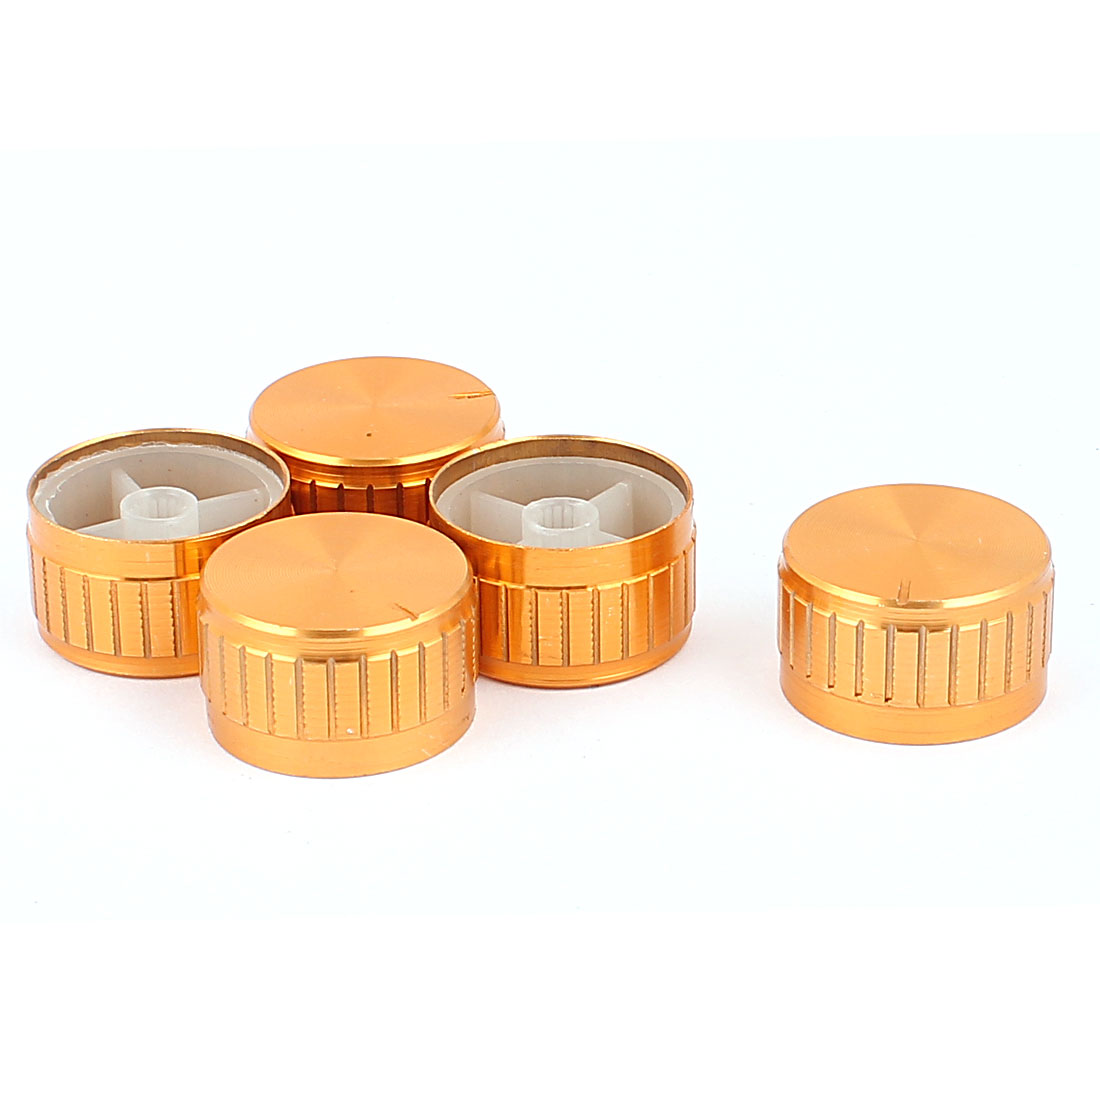 5 Pcs 30mm x 6mm Aluminium Alloy Potentiometer Control Switch Volume Cap Knurled Button Gold Tone